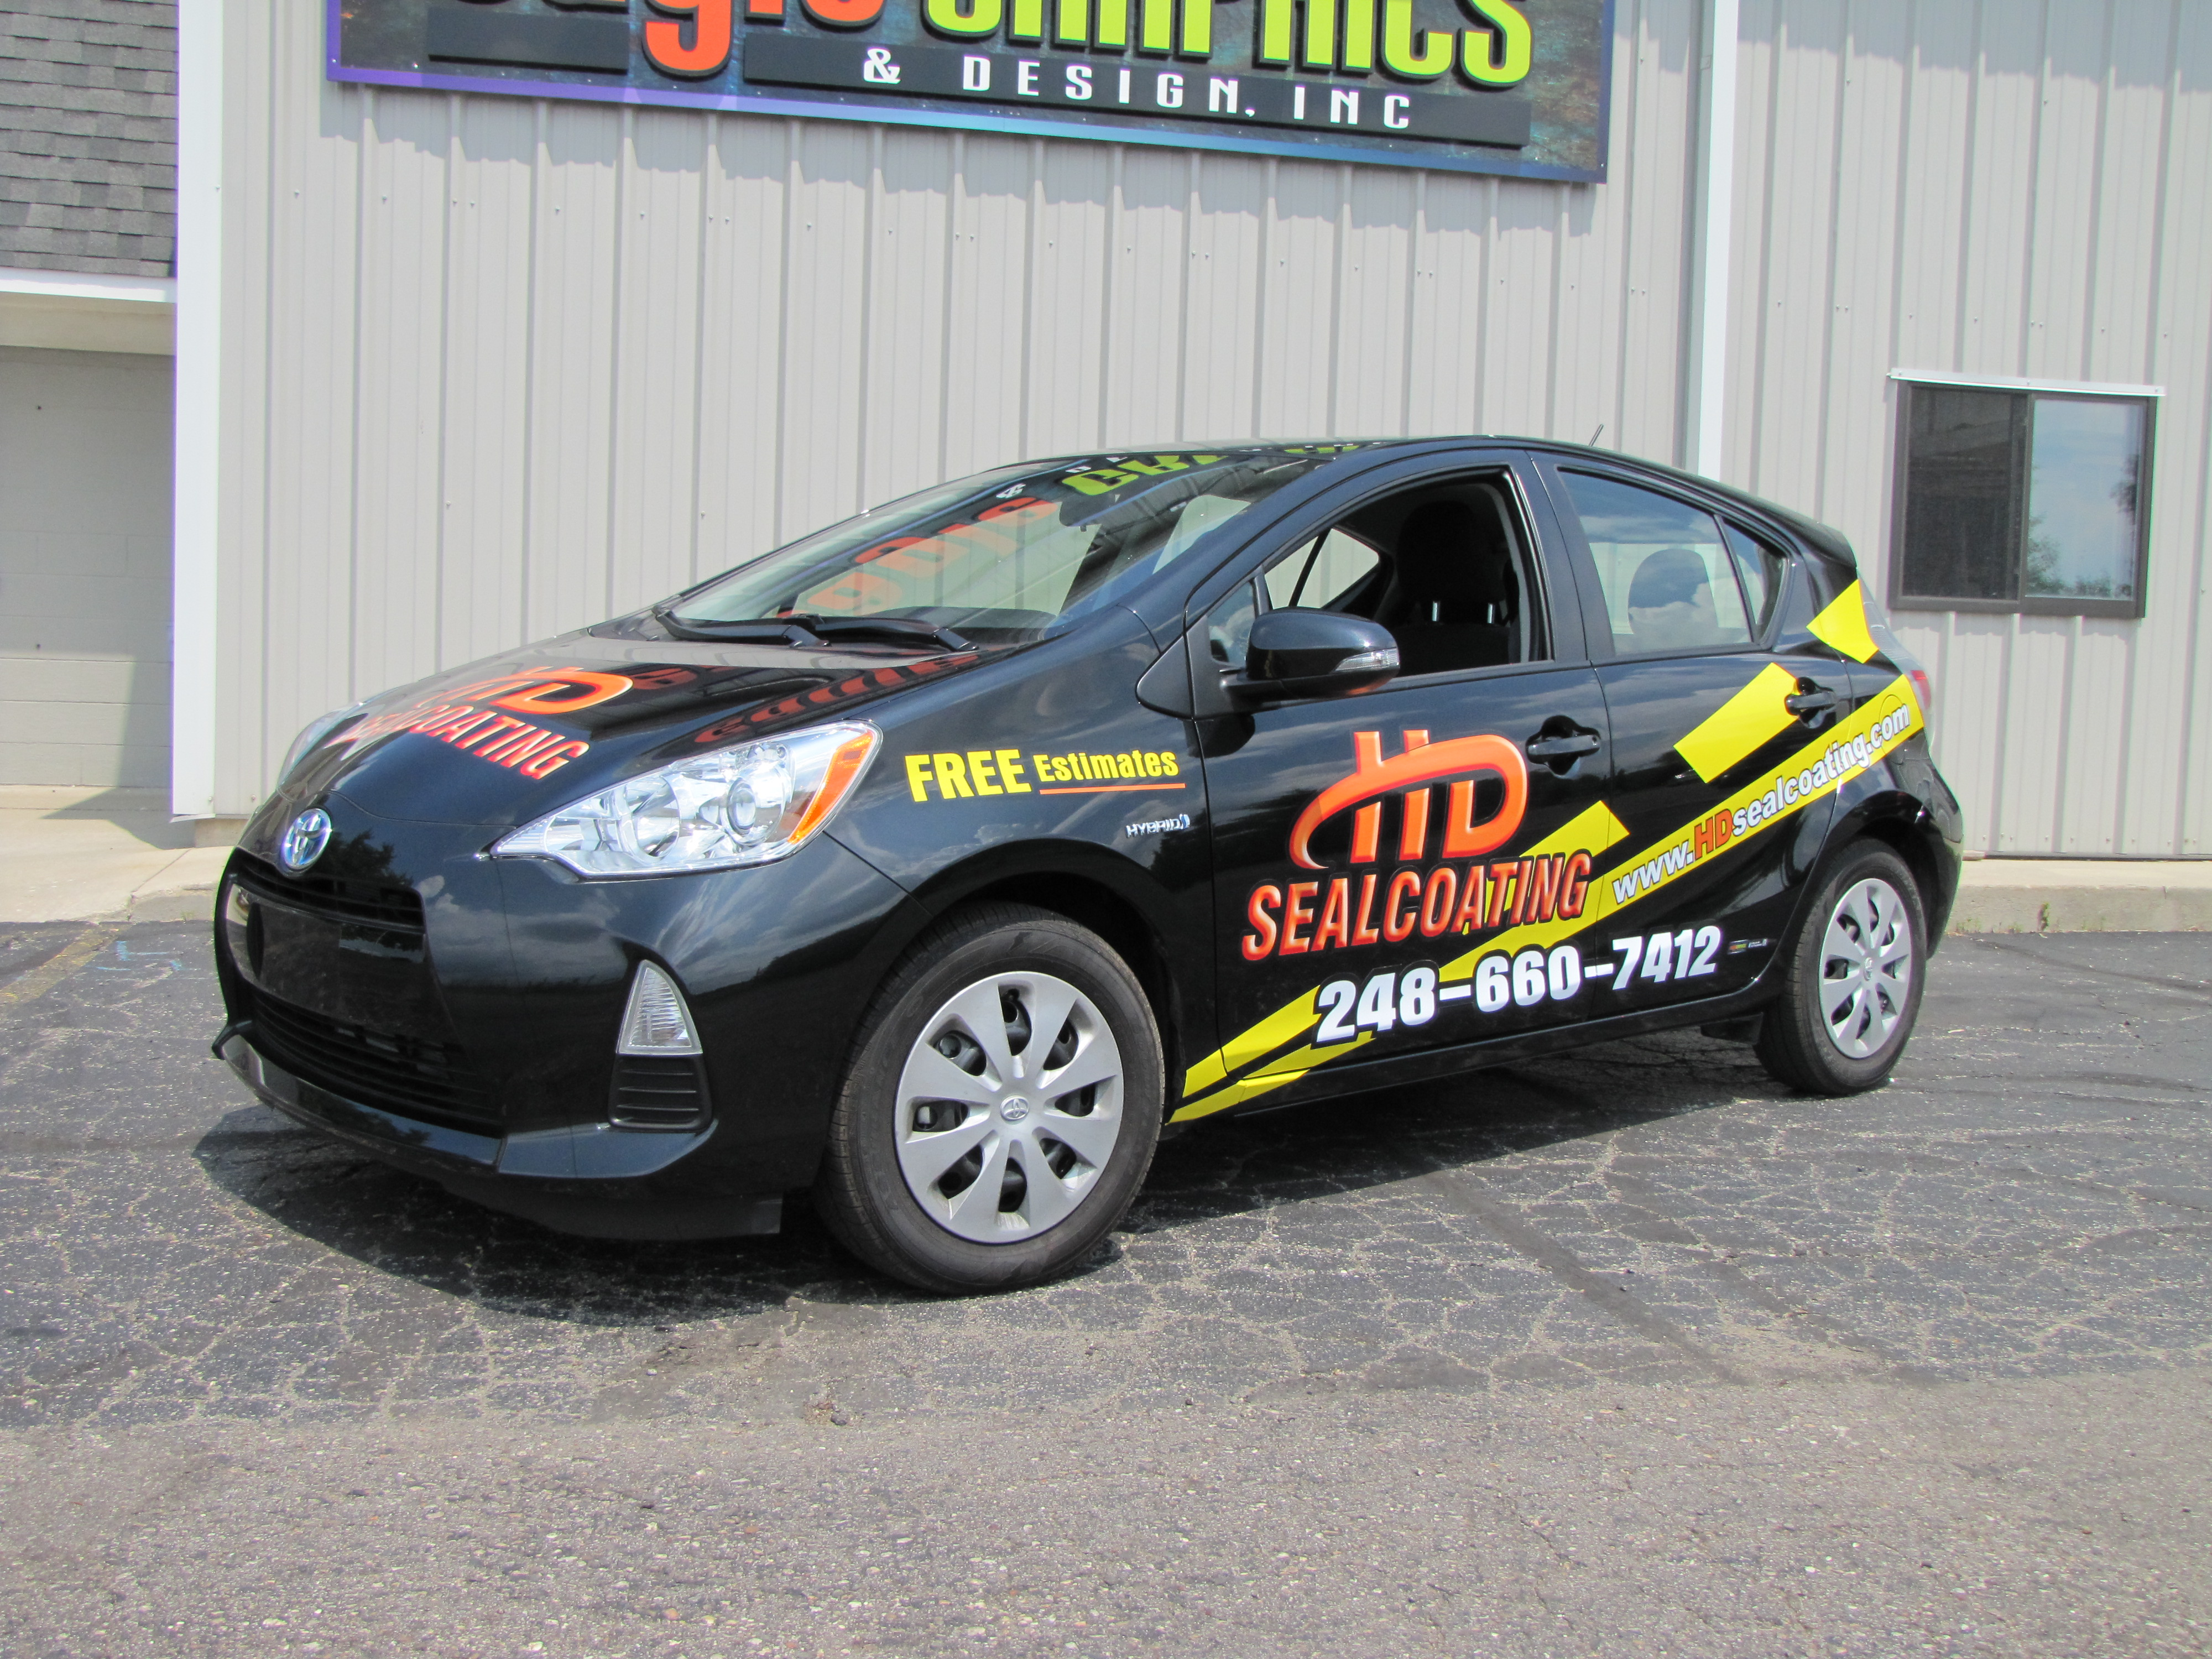 HD Sealcoating Prius partial wrap